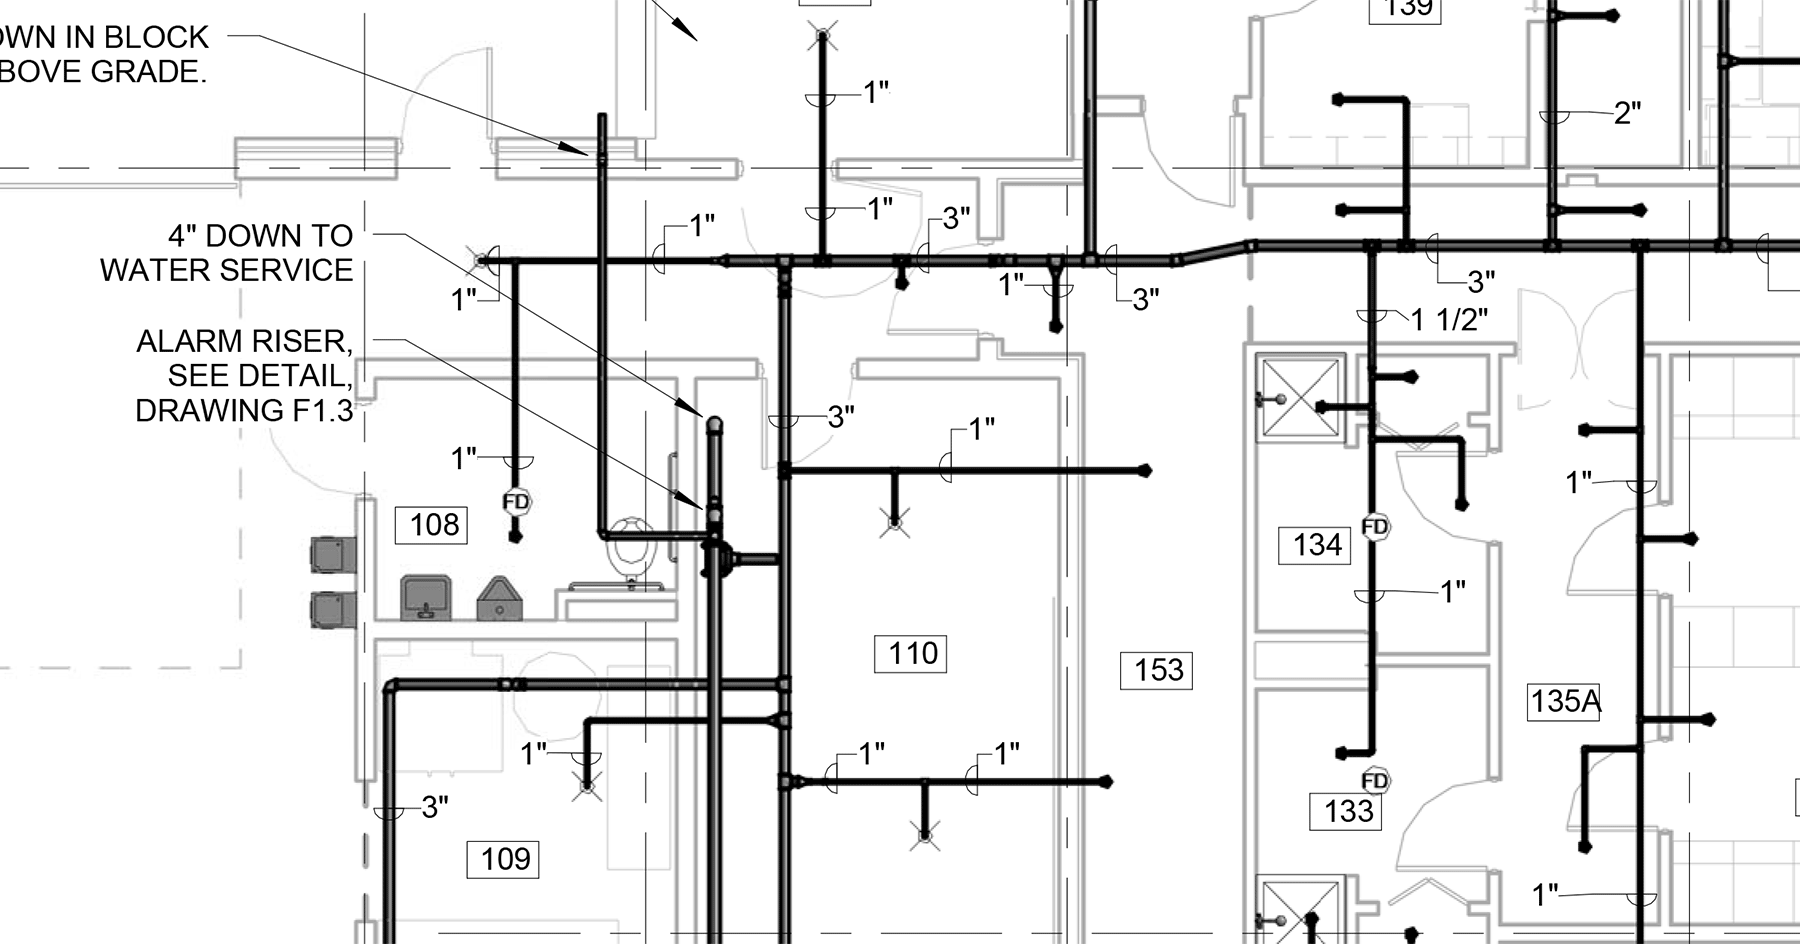 Fire Protection Floor Plan, detail